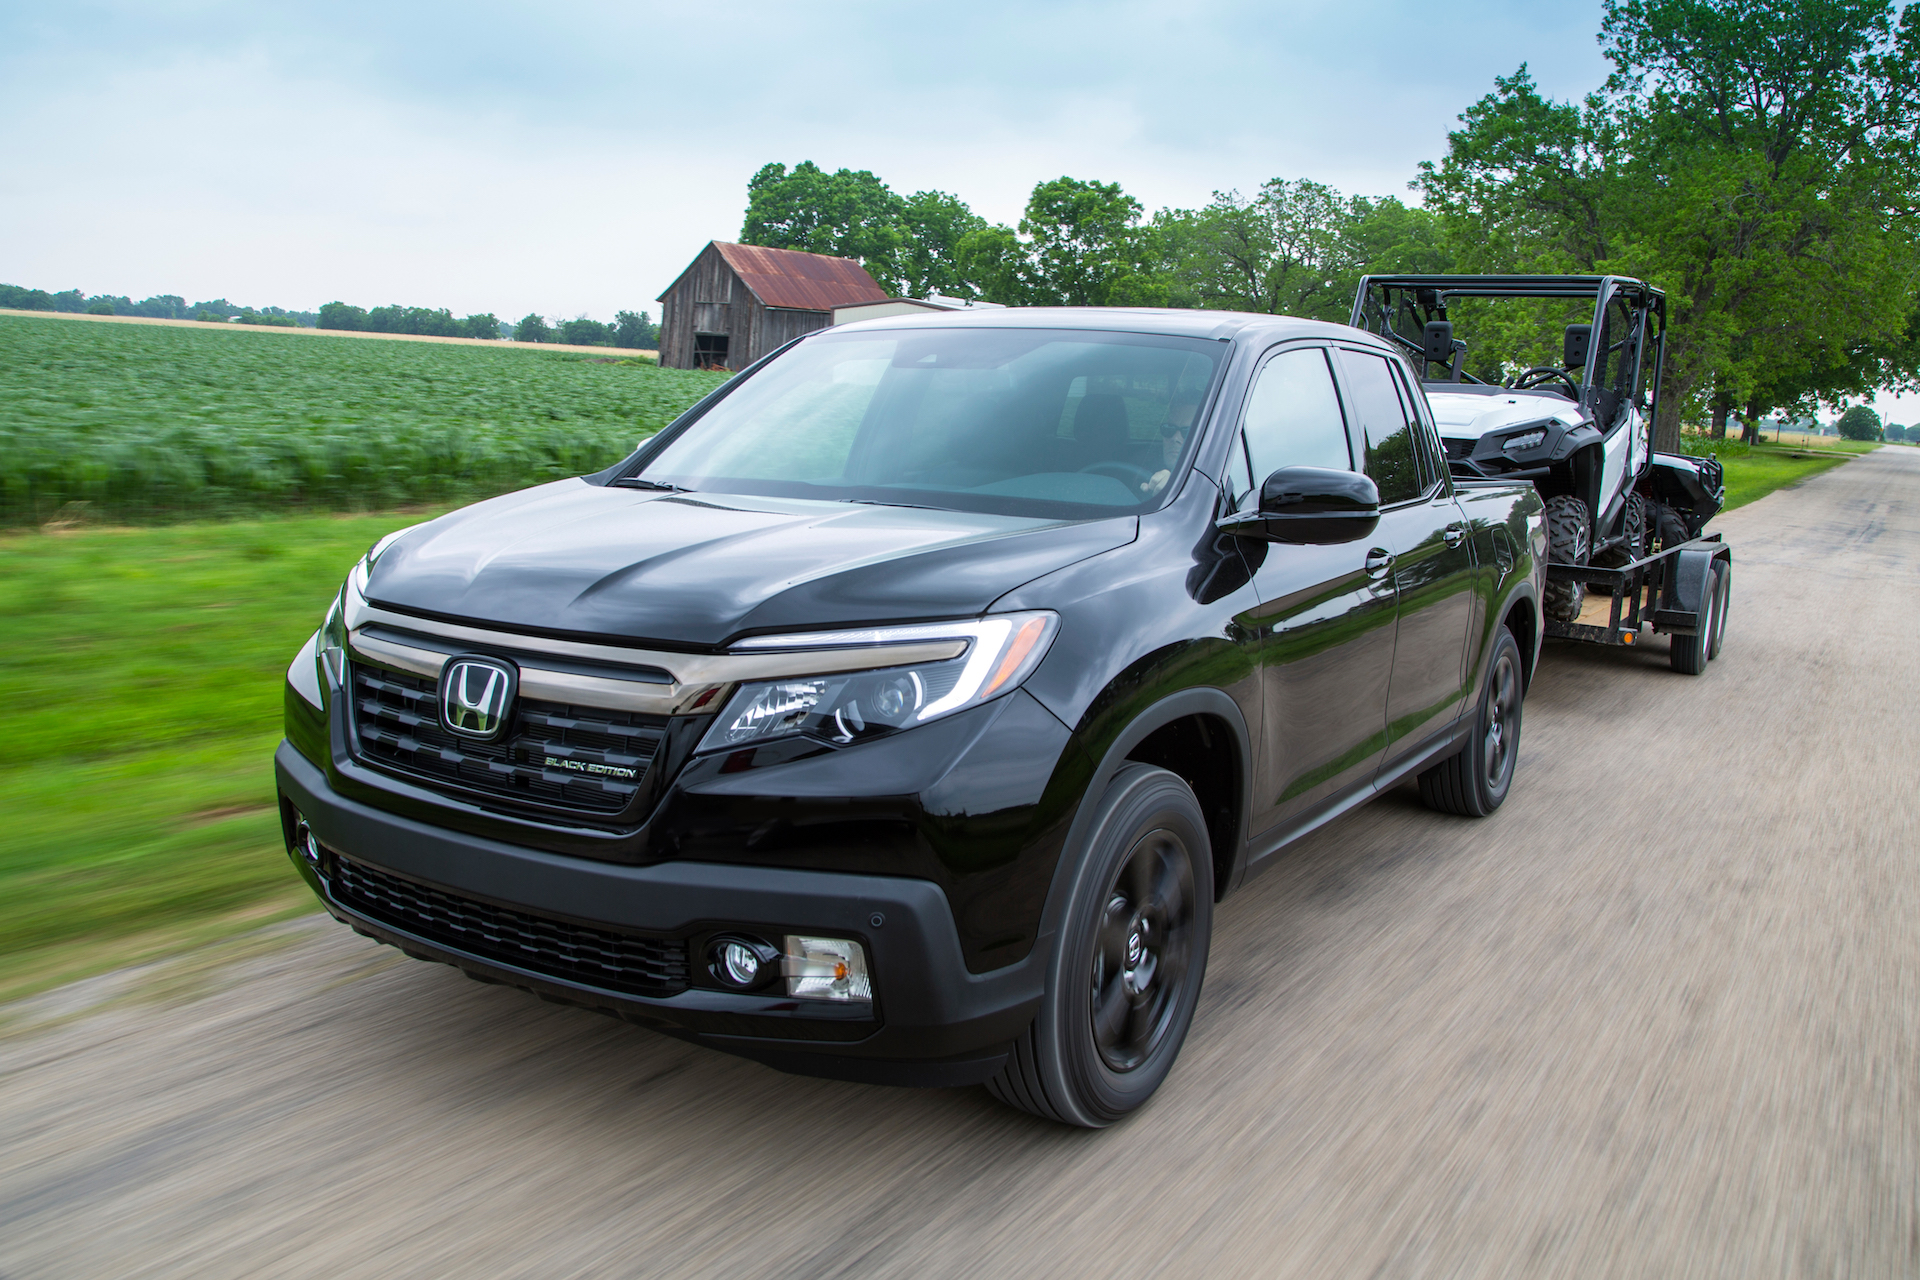 honda ridgeline vs chevrolet colorado compare trucks. Black Bedroom Furniture Sets. Home Design Ideas